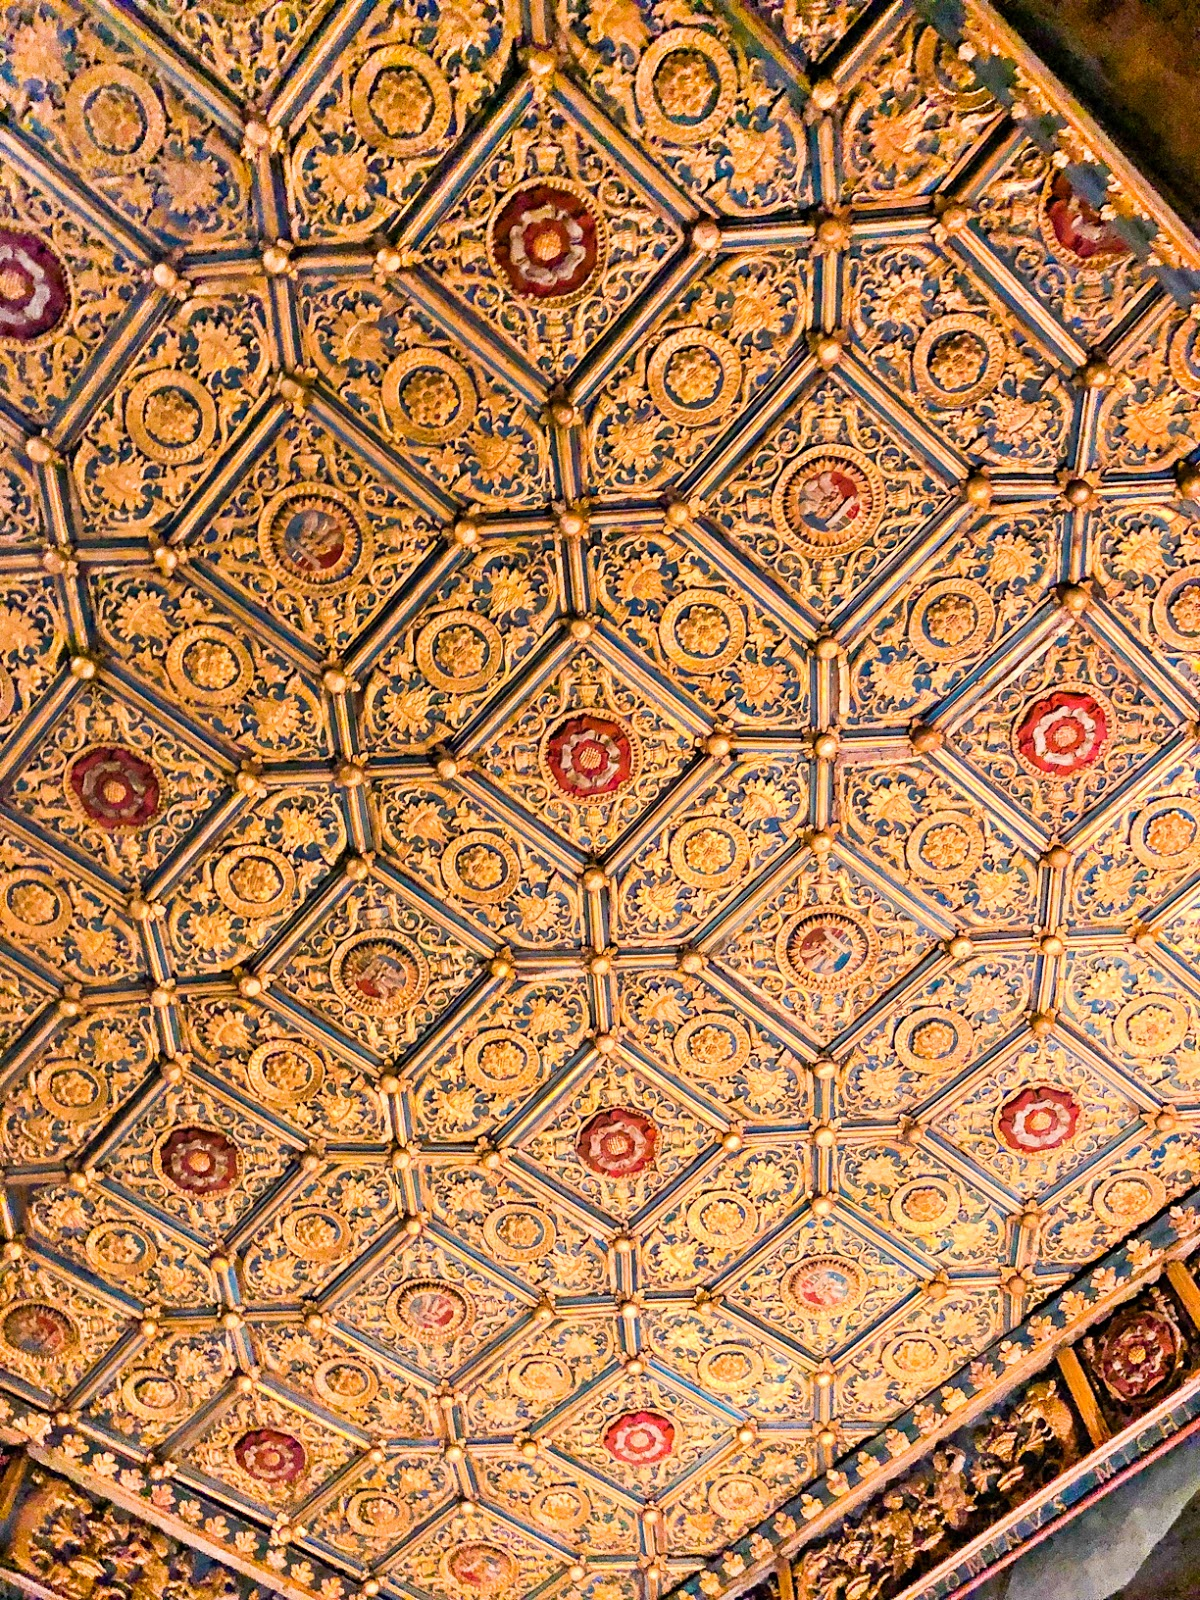 wolseys closest  hampton court palace, original tudor ceiling hampton court palace